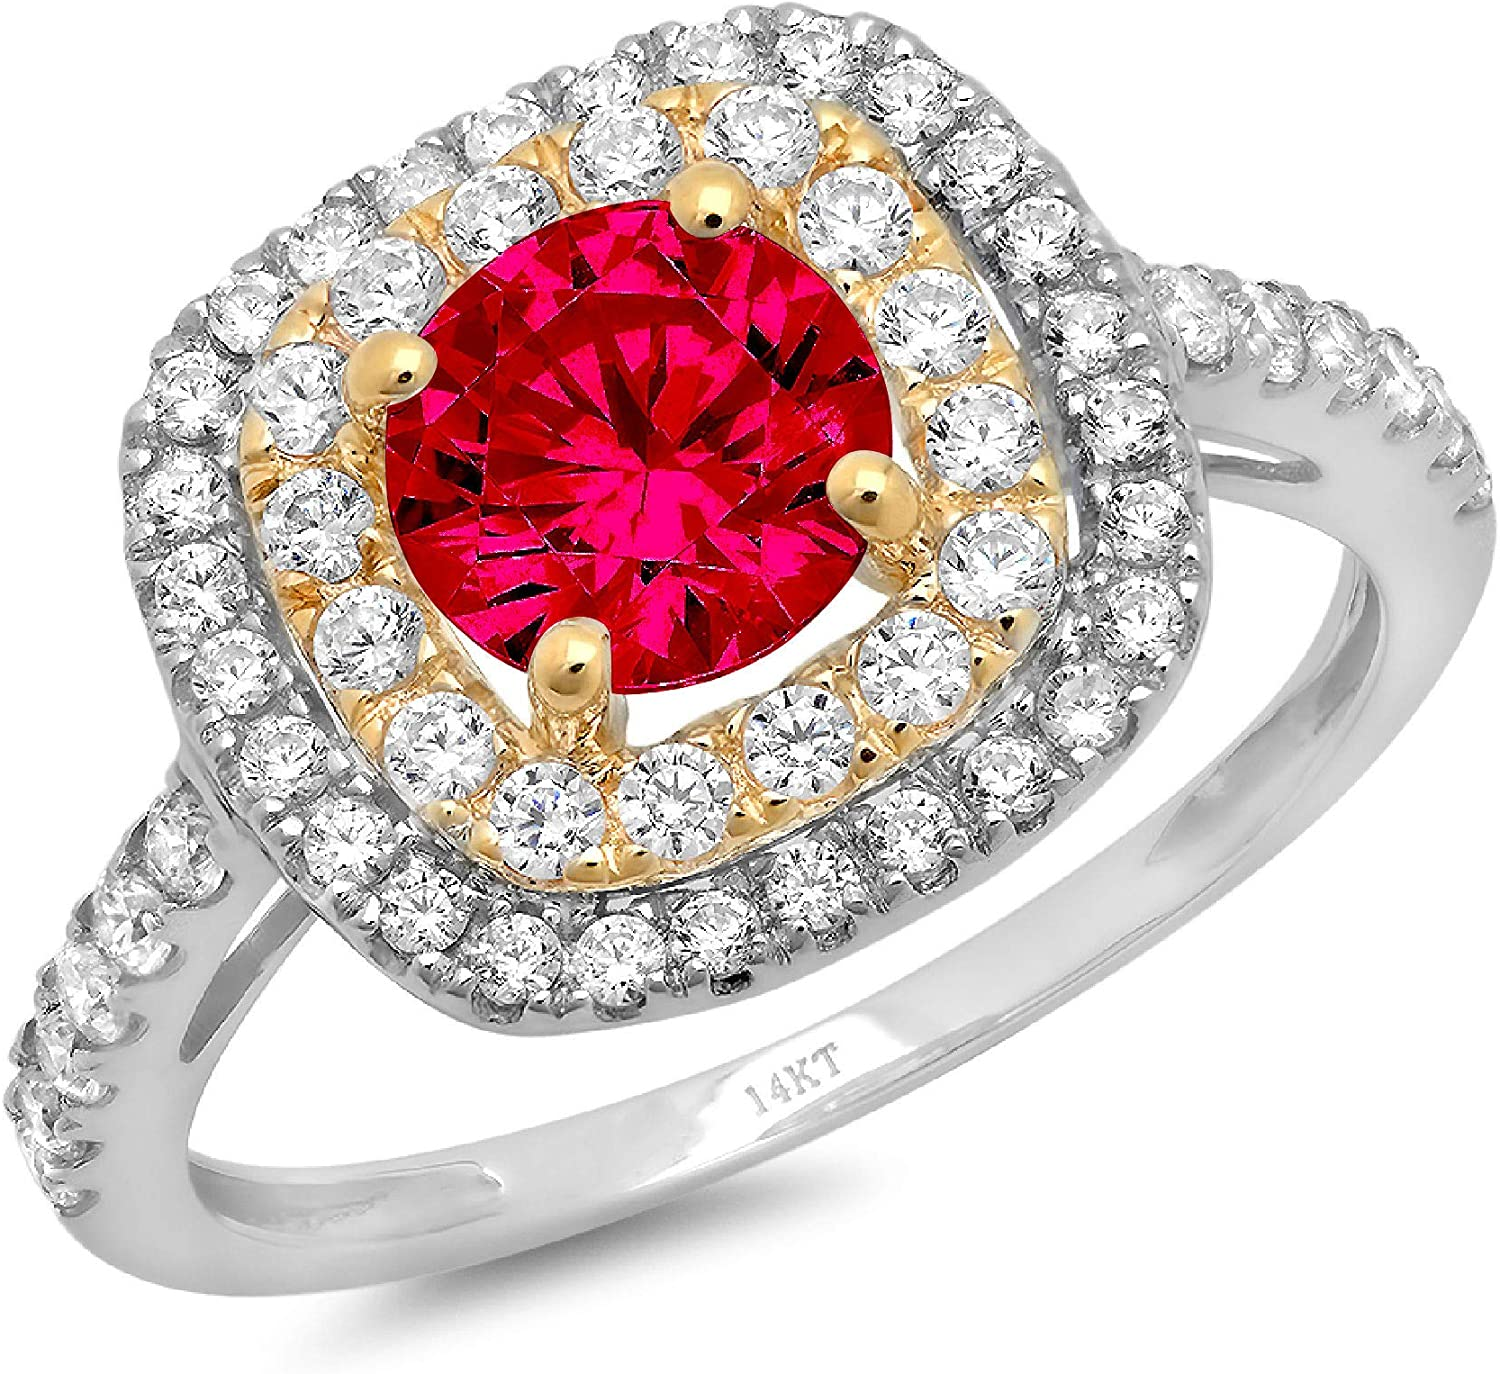 1.8 ct Round Cut Solitaire accent double Halo Stunning Genuine Flawless Simulated Pink Tourmaline Modern Promise Statement Designer Ring 14k White & Yellow Gold